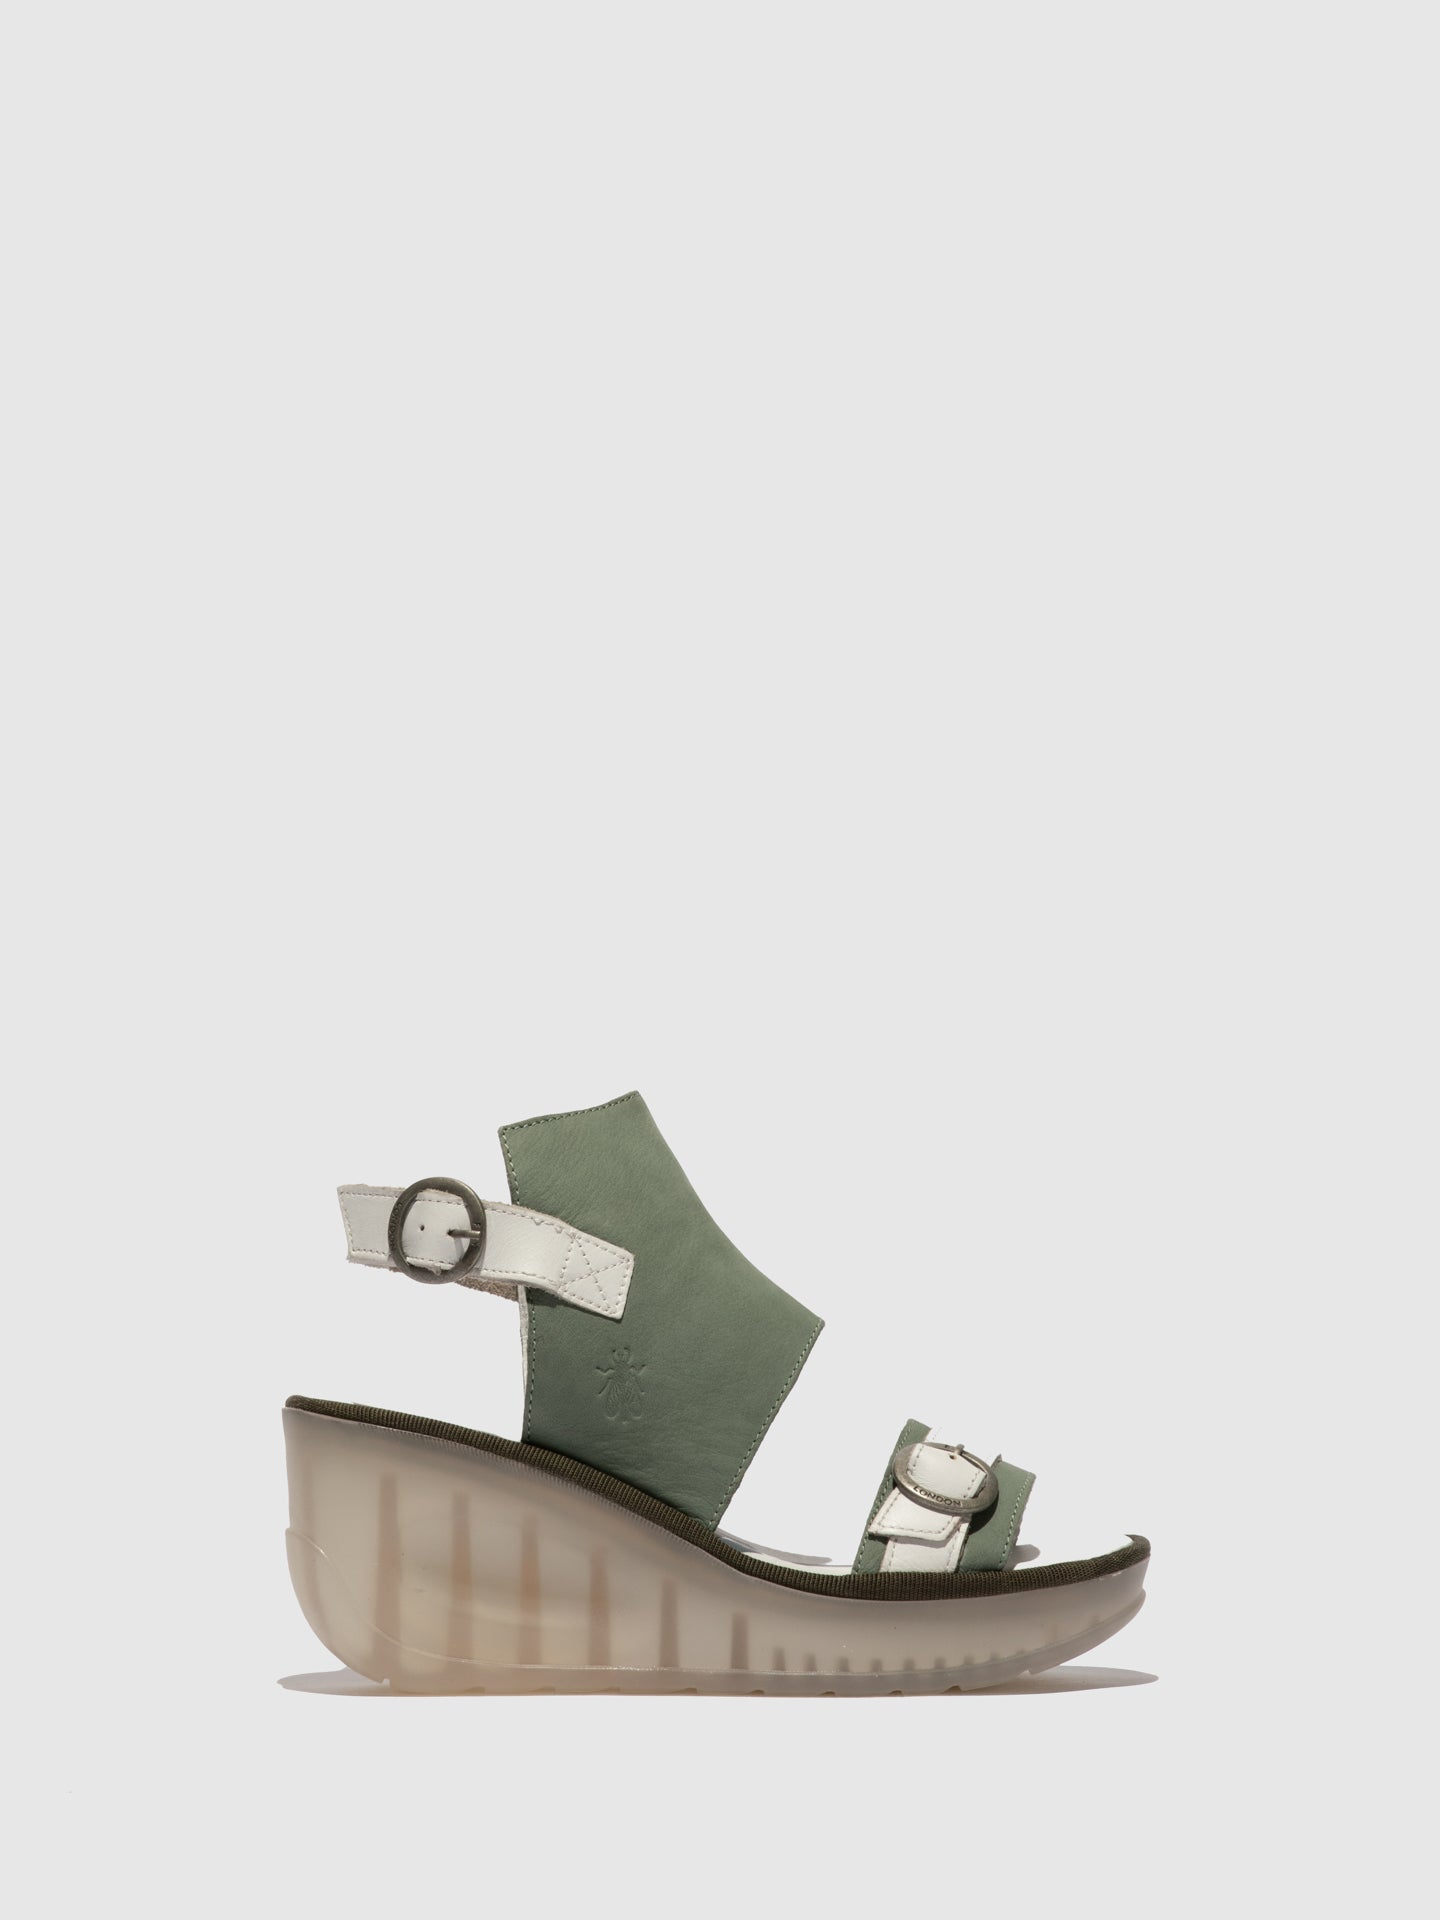 Fly London Green Ankle Strap Sandals